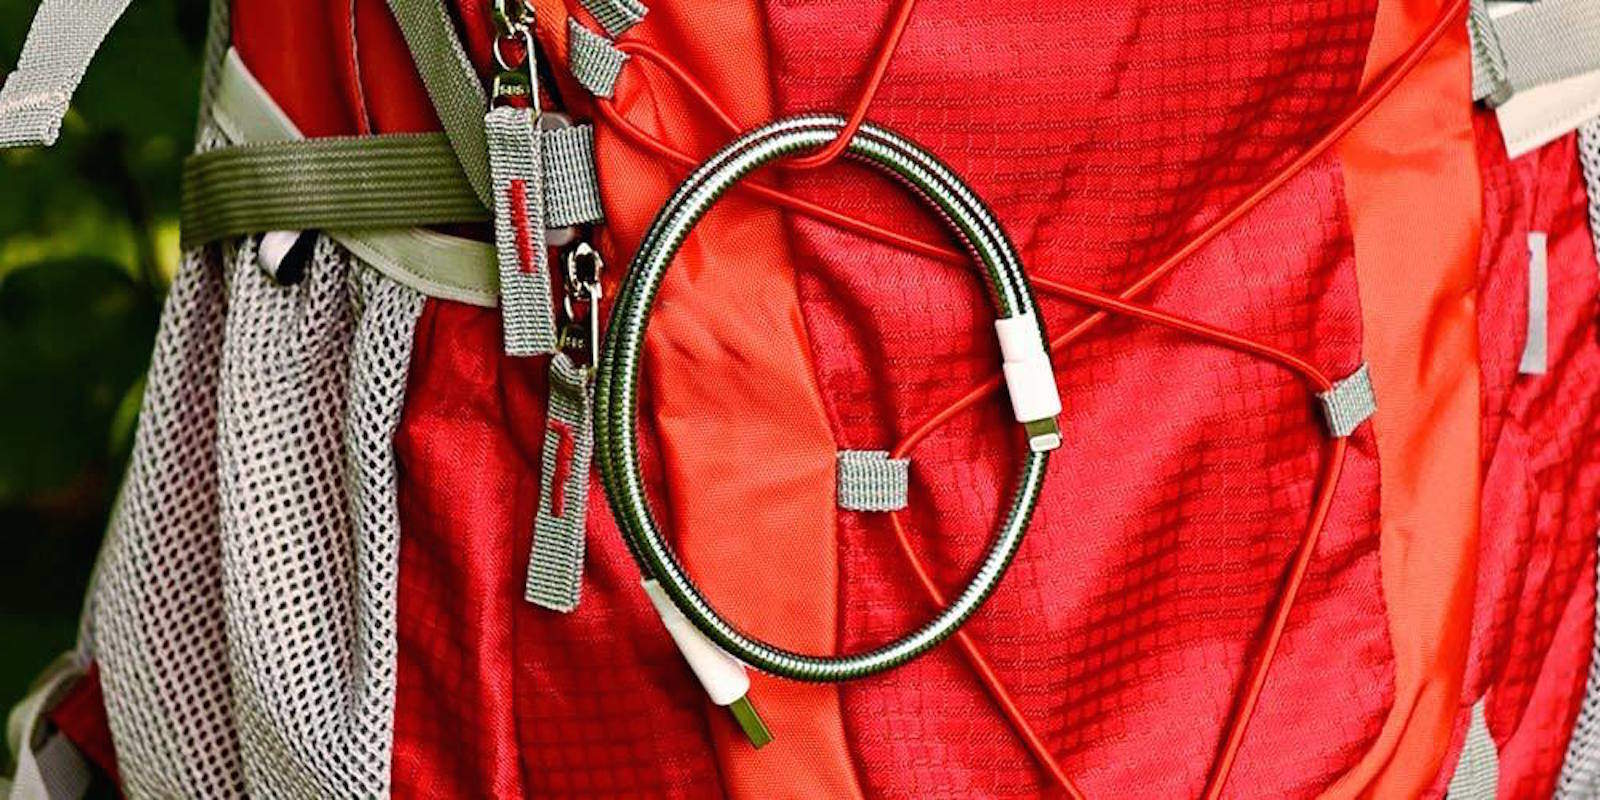 Last Chance To Get These Iron Man Grade Lightning Cables